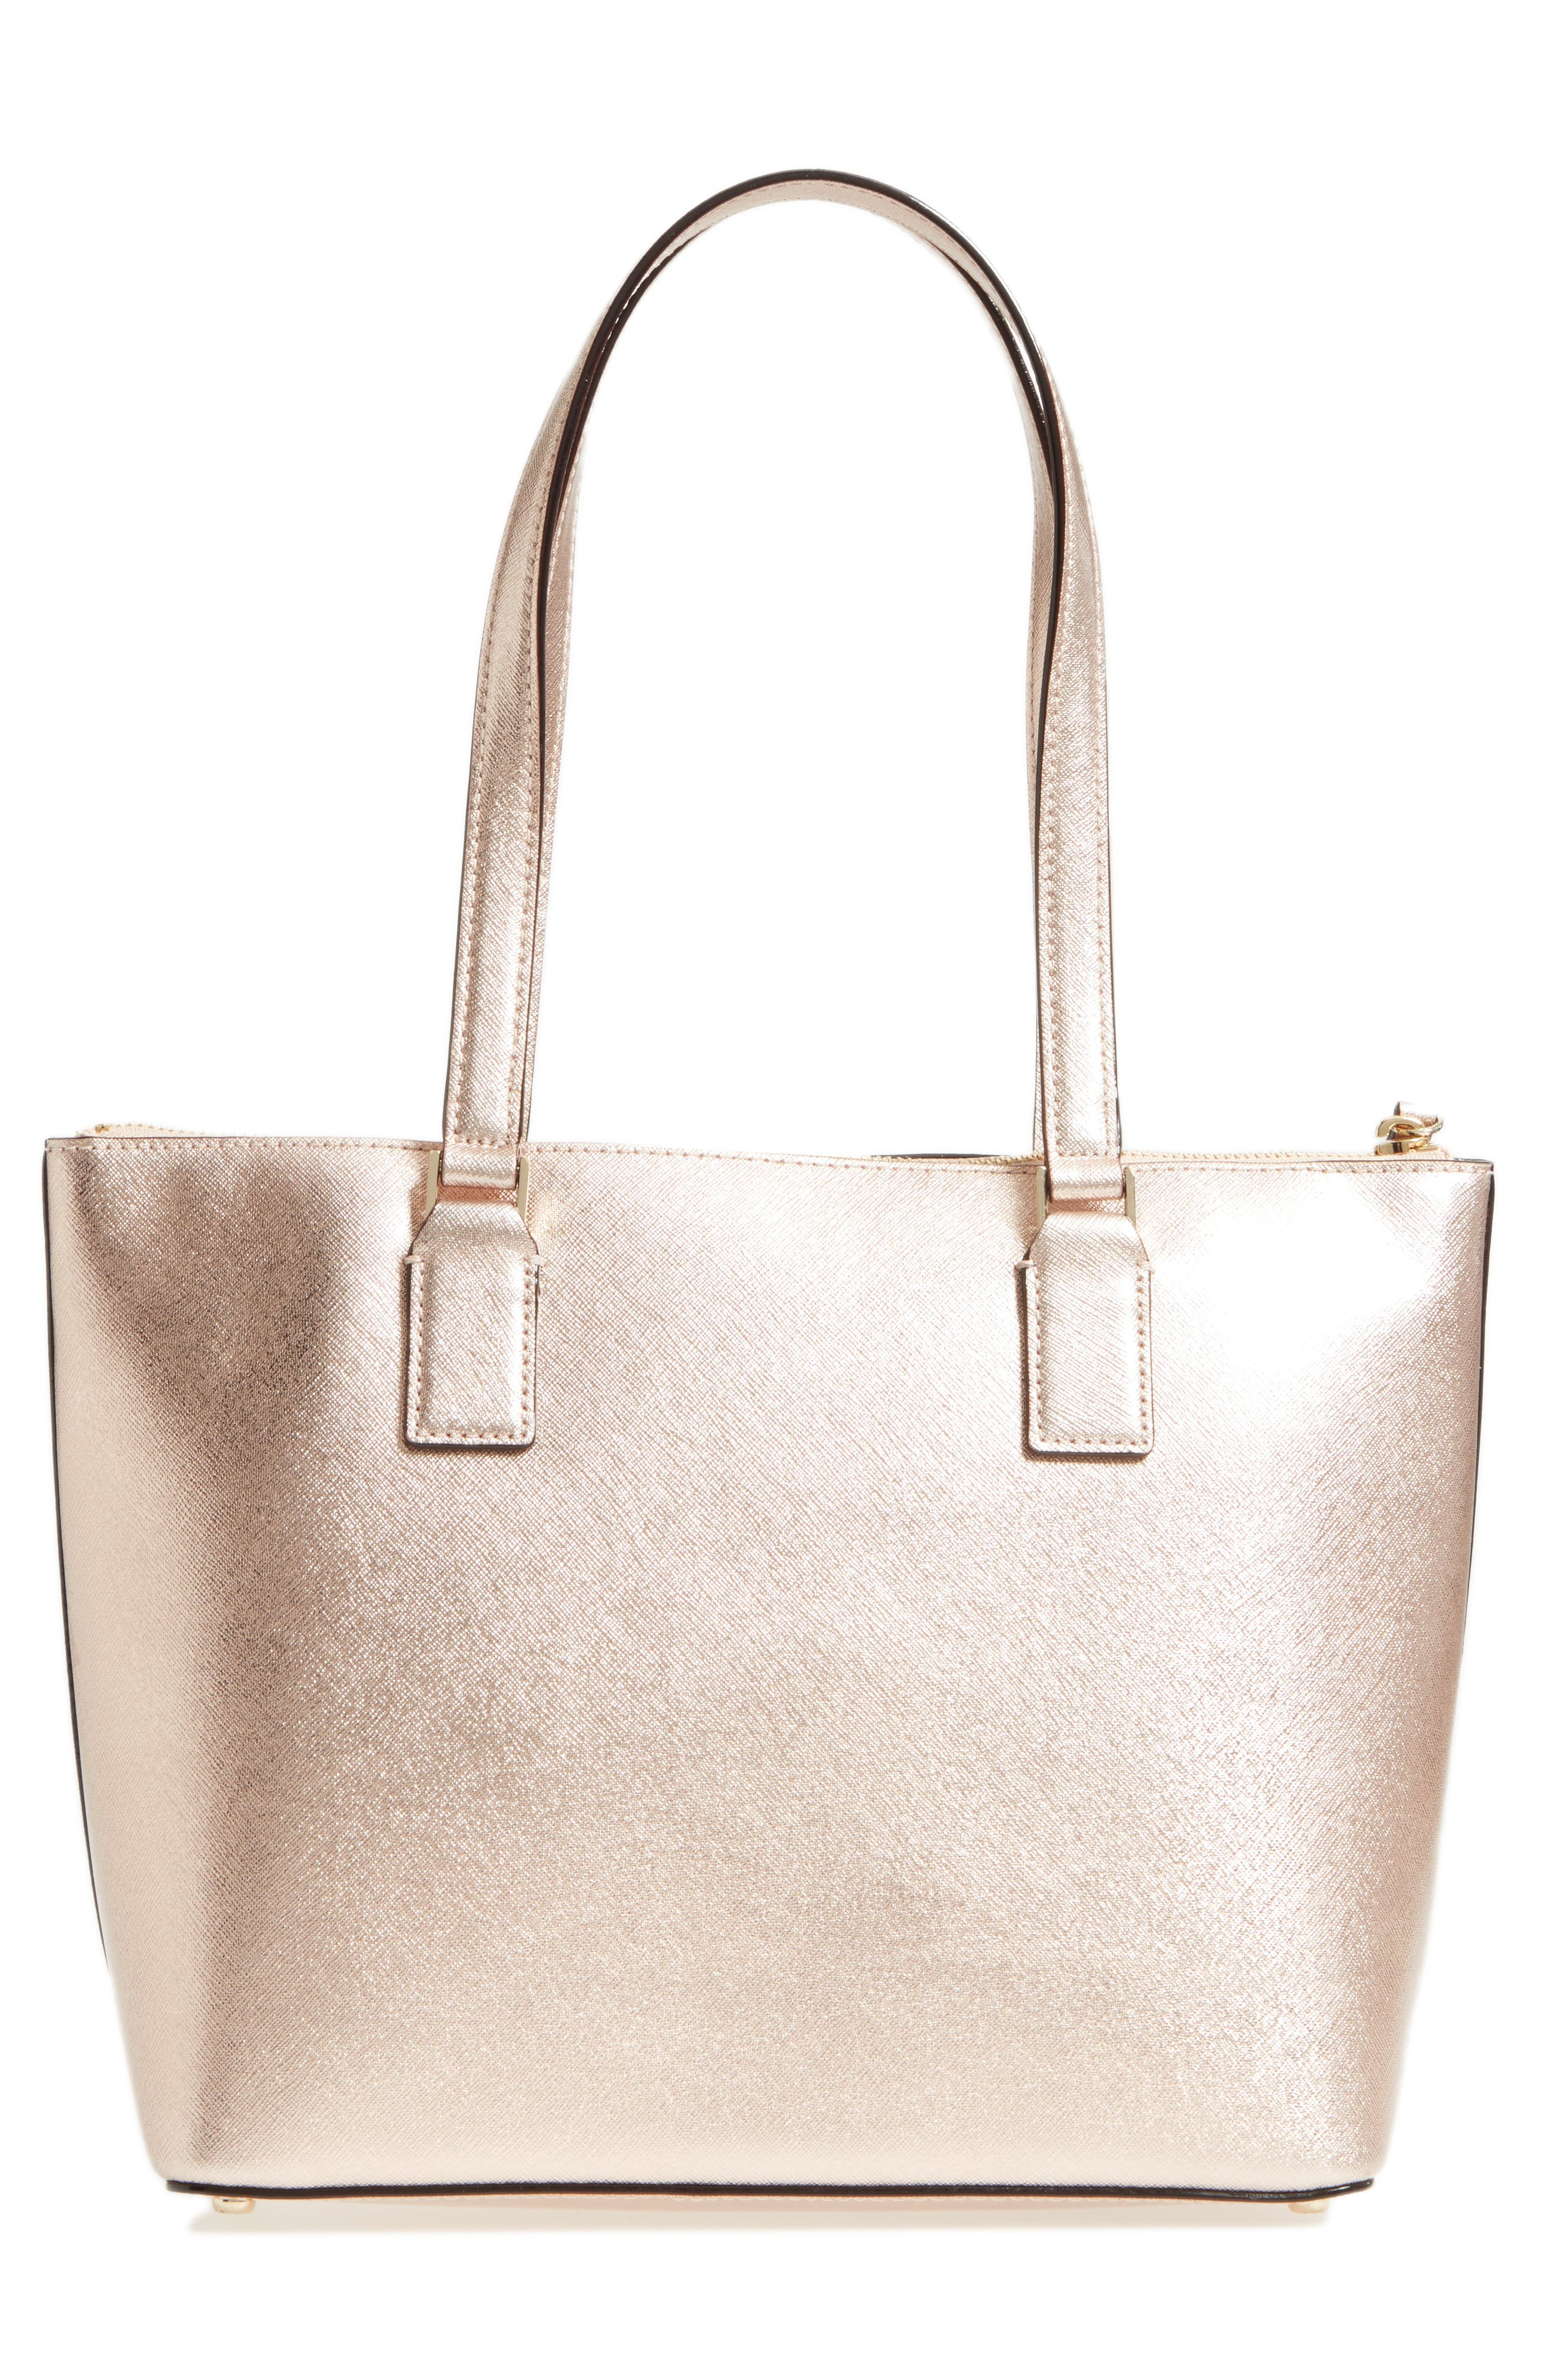 cameron street - small lucie leather tote,                             Alternate thumbnail 3, color,                             650